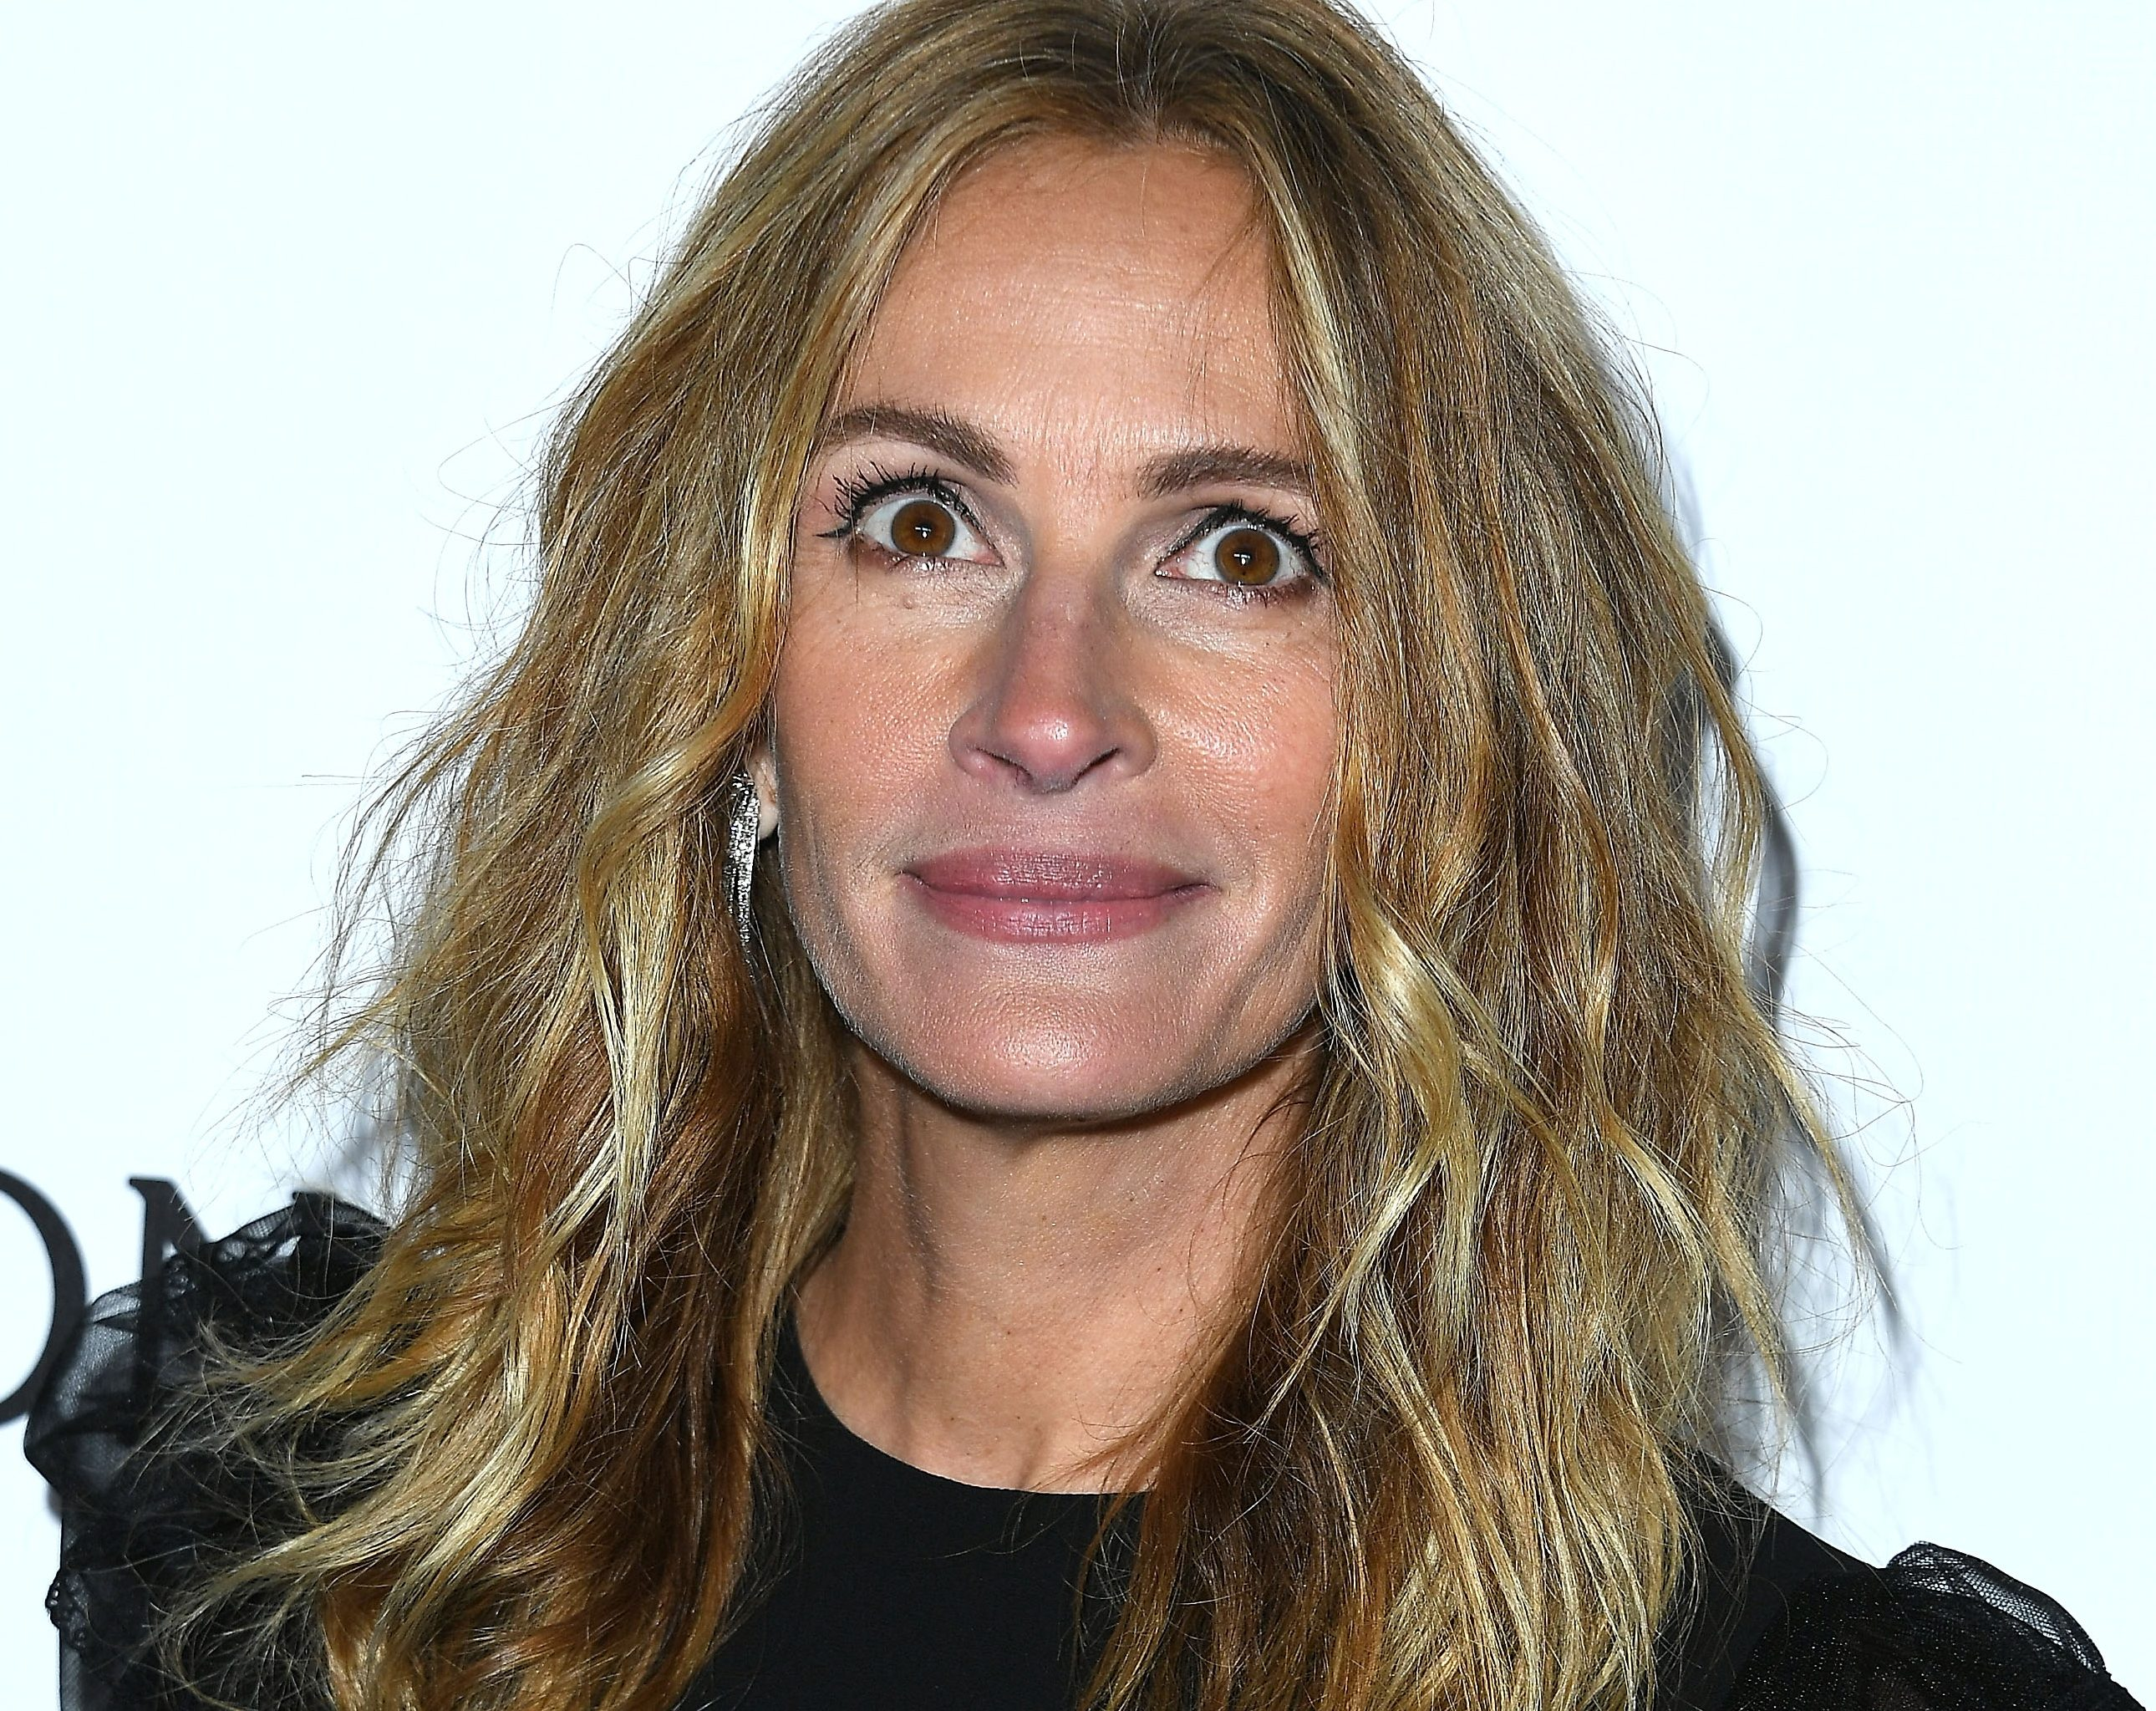 Julia Roberts is all smiles as she joins Instagram – but doesn't bother following anyone